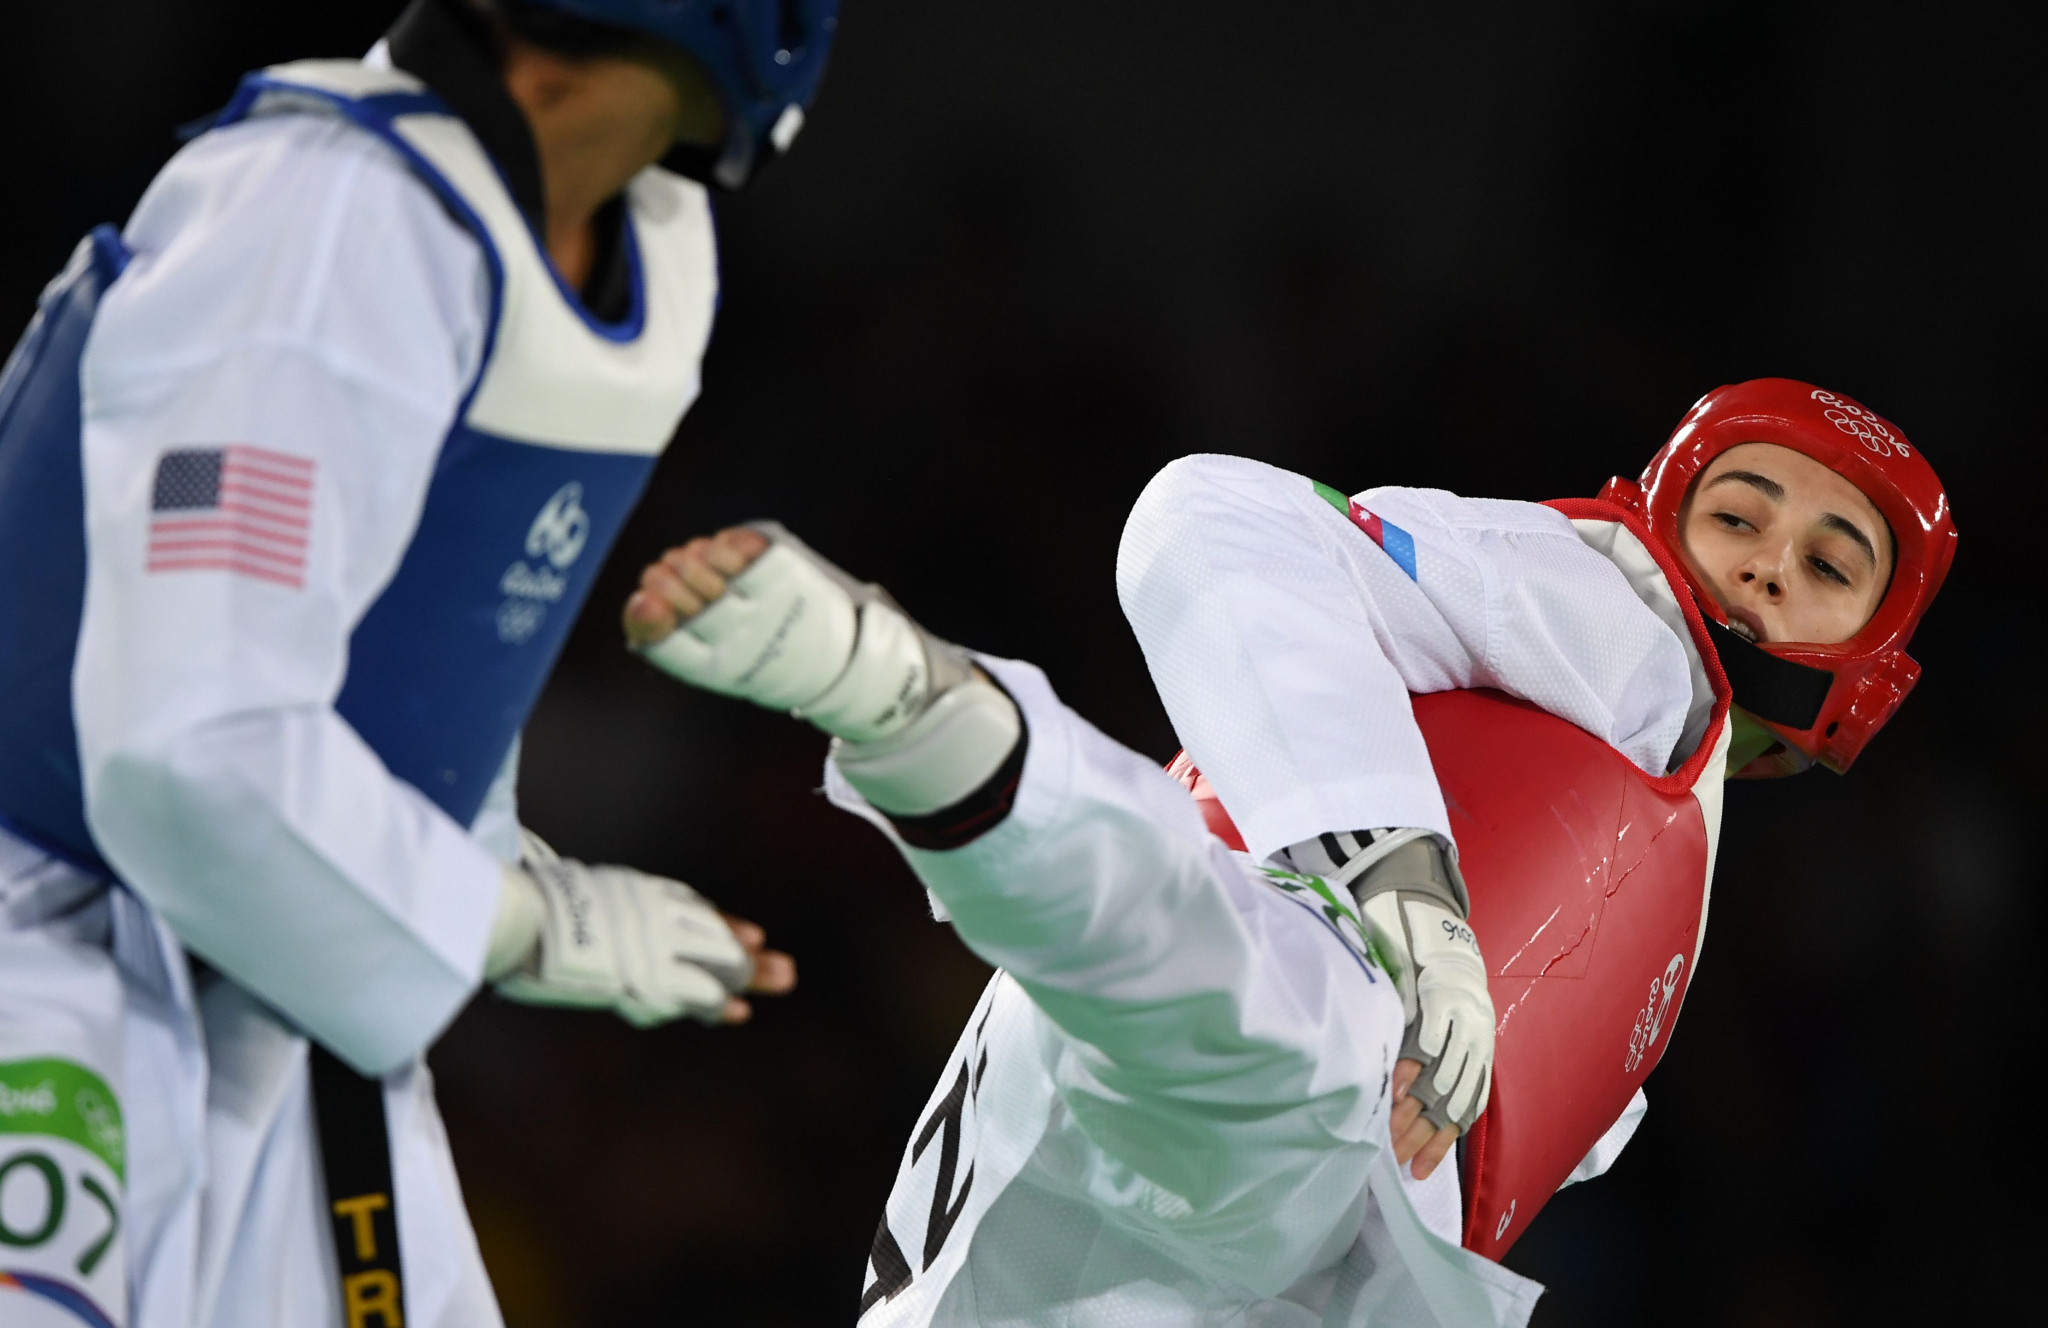 Farida Azizova missed out on a medal at Rio 2016 but will carry the flag for Azerbaijan at Tokyo 2020 ©Getty Images